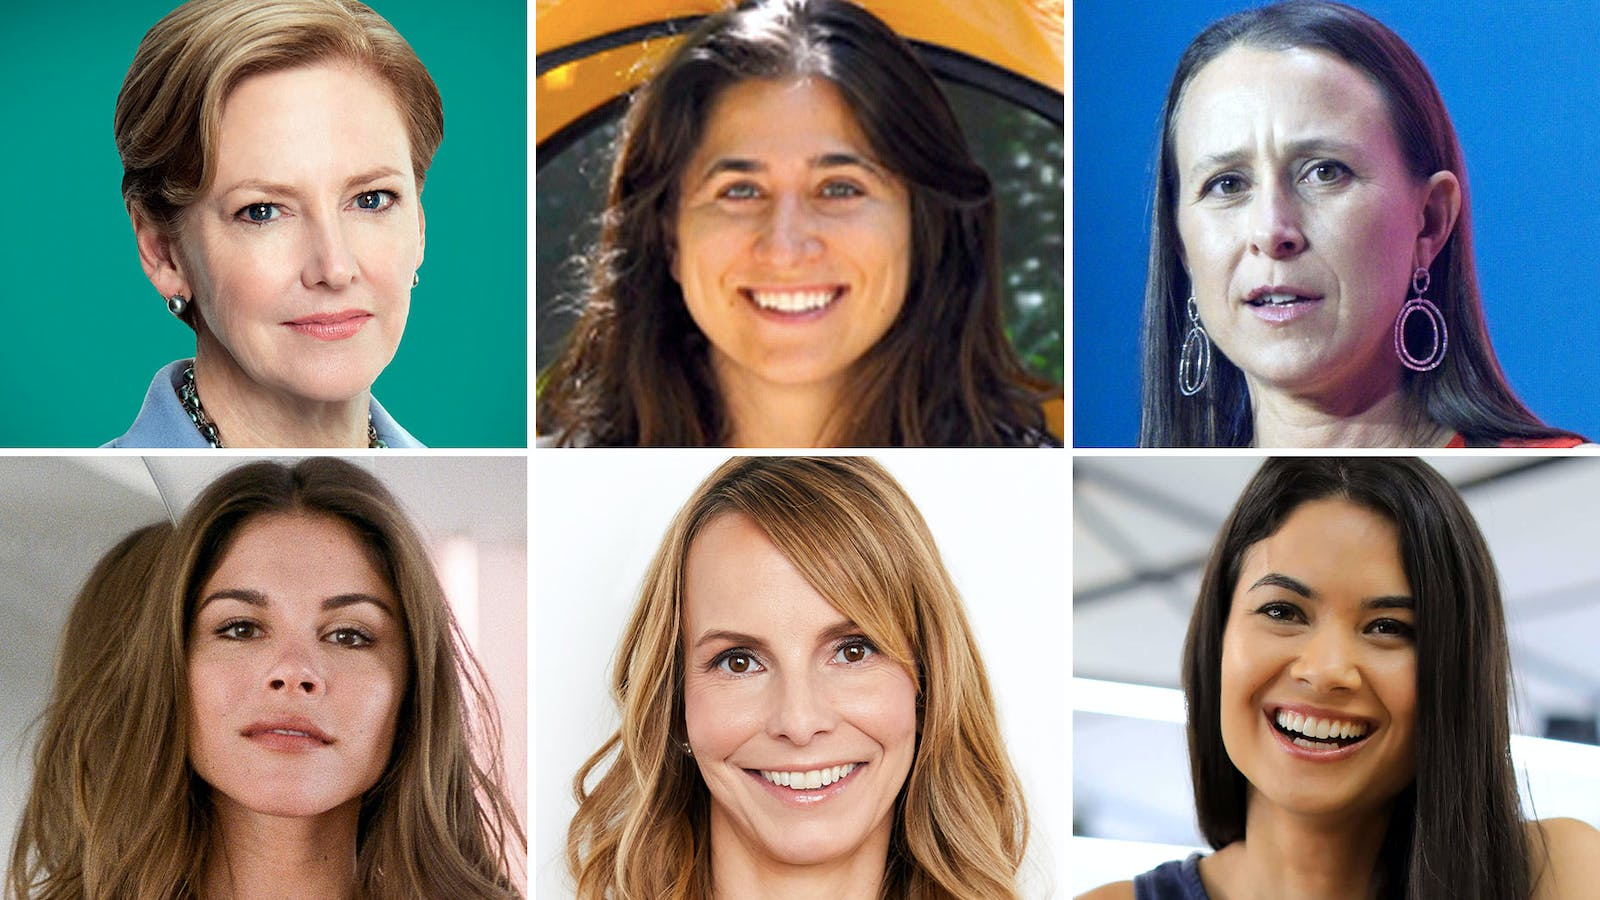 Clockwise from top-left: Ellen Kullman, Alyssa Ravasio, Anne Wojcicki, Melanie Perkins, Heidi Zak and Emily Weiss. Photo of Anne Wojcicki by Bloomberg; all others provided by subject.